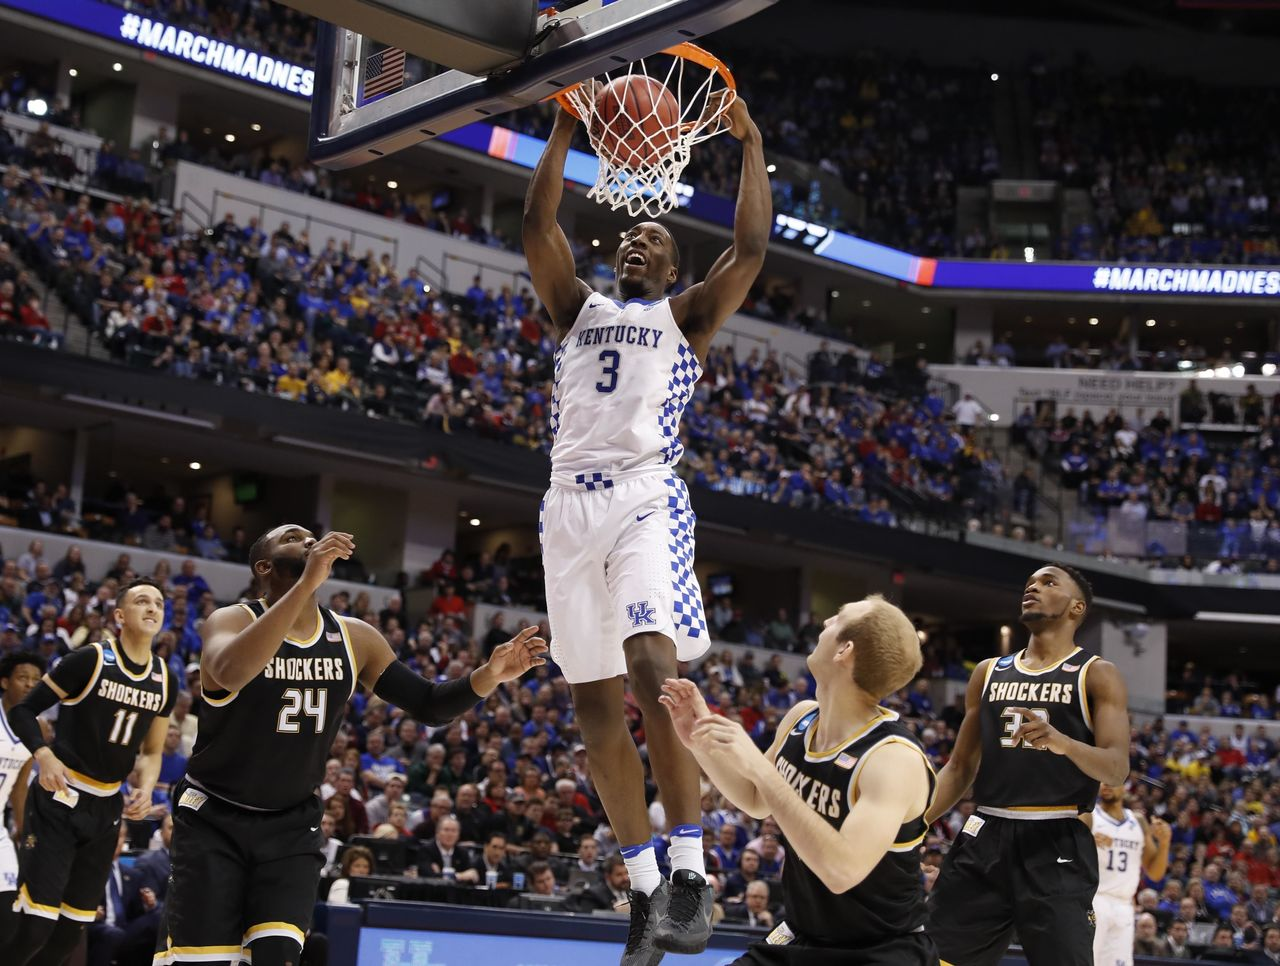 Cropped 2017 03 19t203119z 2094963615 nocid rtrmadp 3 ncaa basketball ncaa tournament second round kentucky vs wichita state